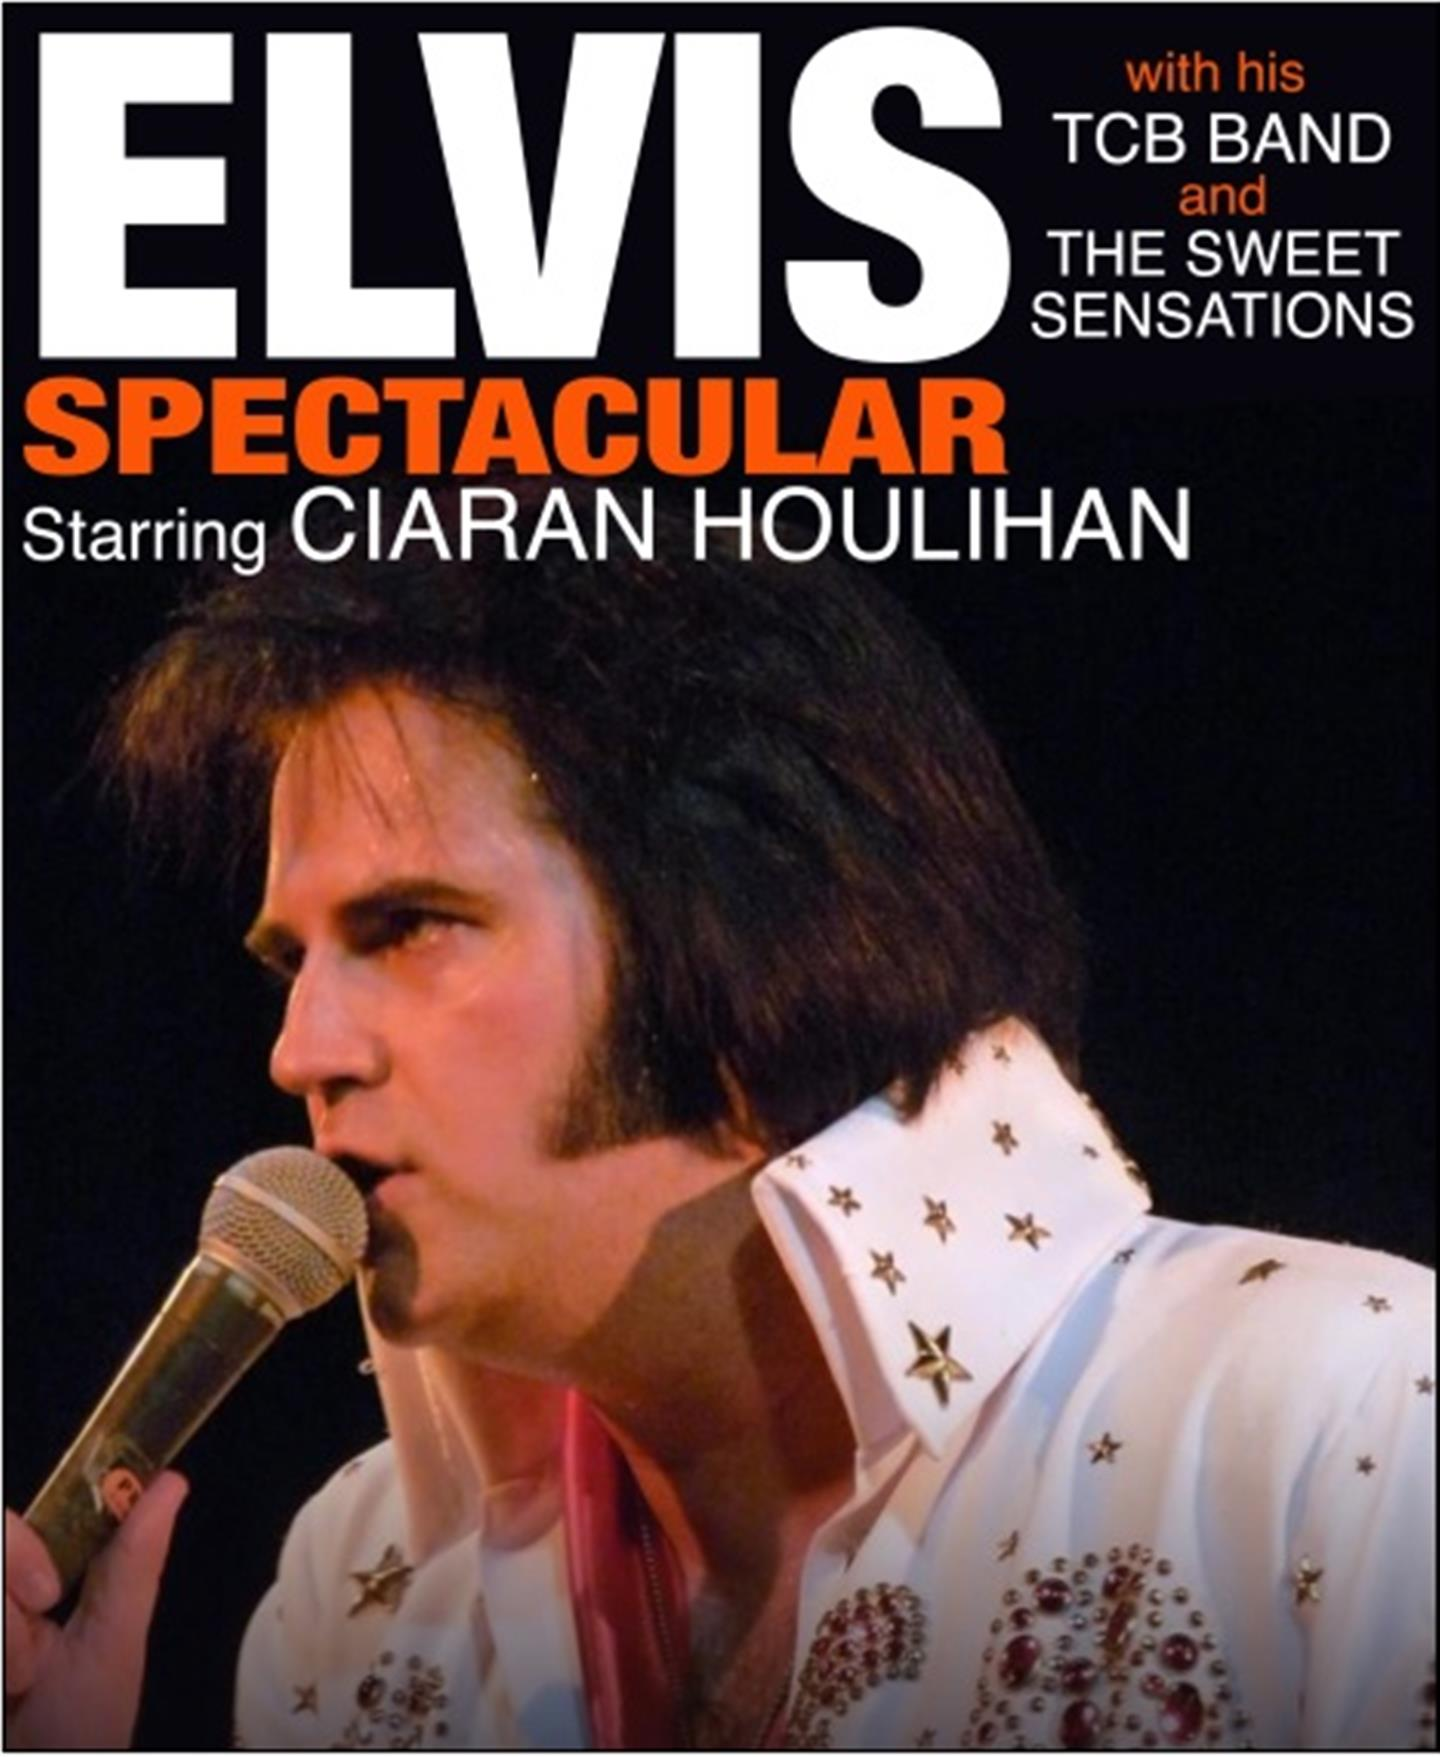 The Elvis Spectacular Show Starring CIARAN HOULIHAN